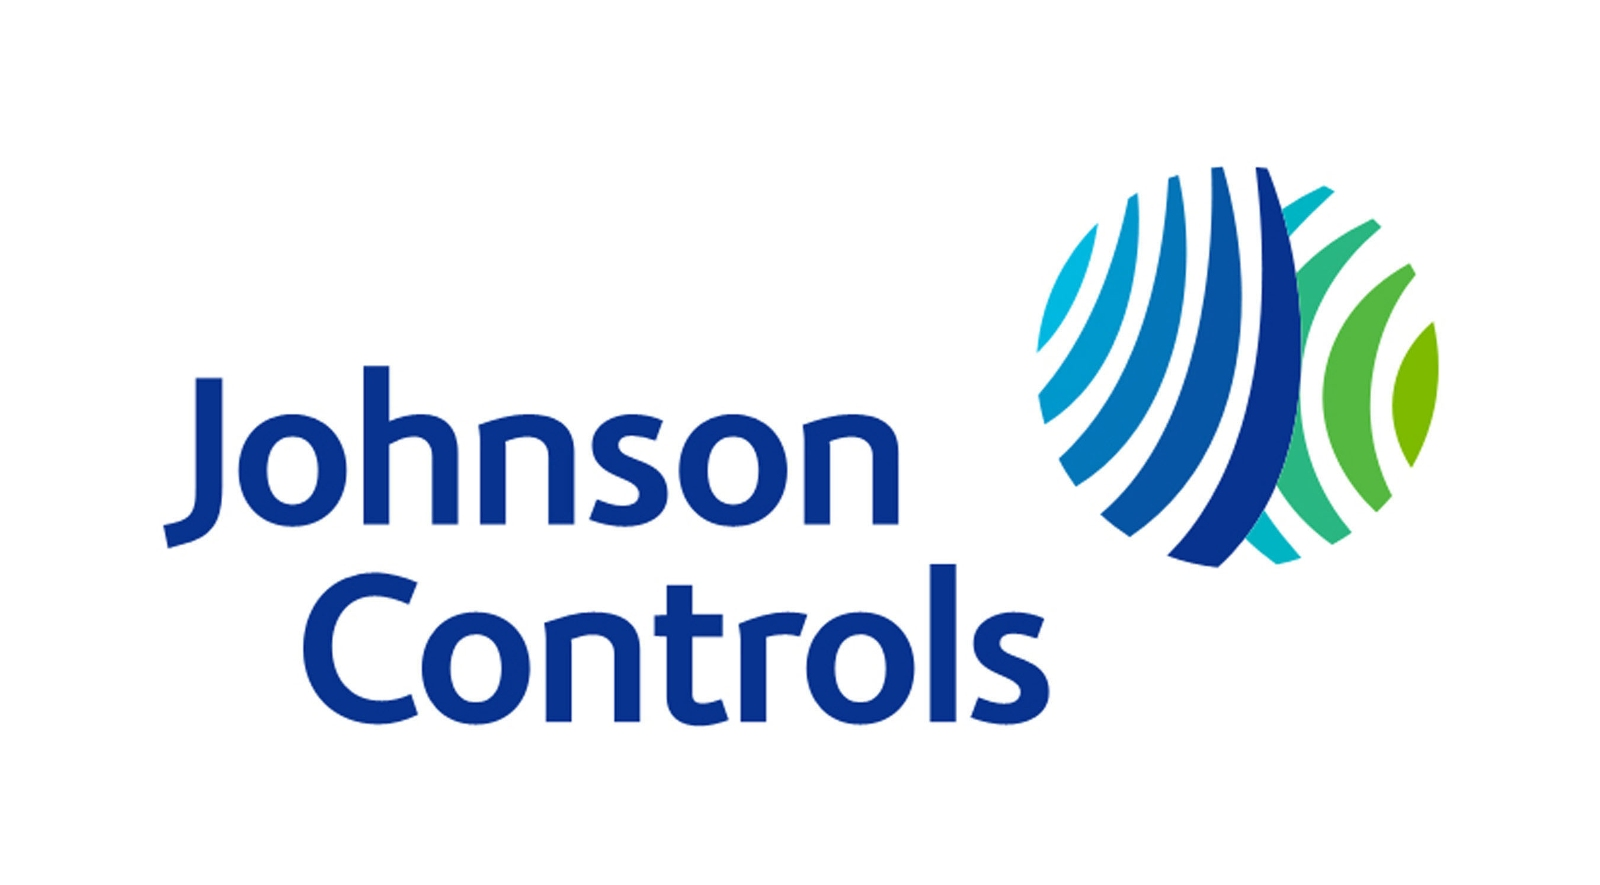 johnson controls These johnson controls freezer controls are well made and keep working have owned one that is in continual use for ~ 1 year and just purchased 2 more for chest freezers this year all freezers are used as controlled refrigerators for wine fermentation with these controllers between 40f and 60f.